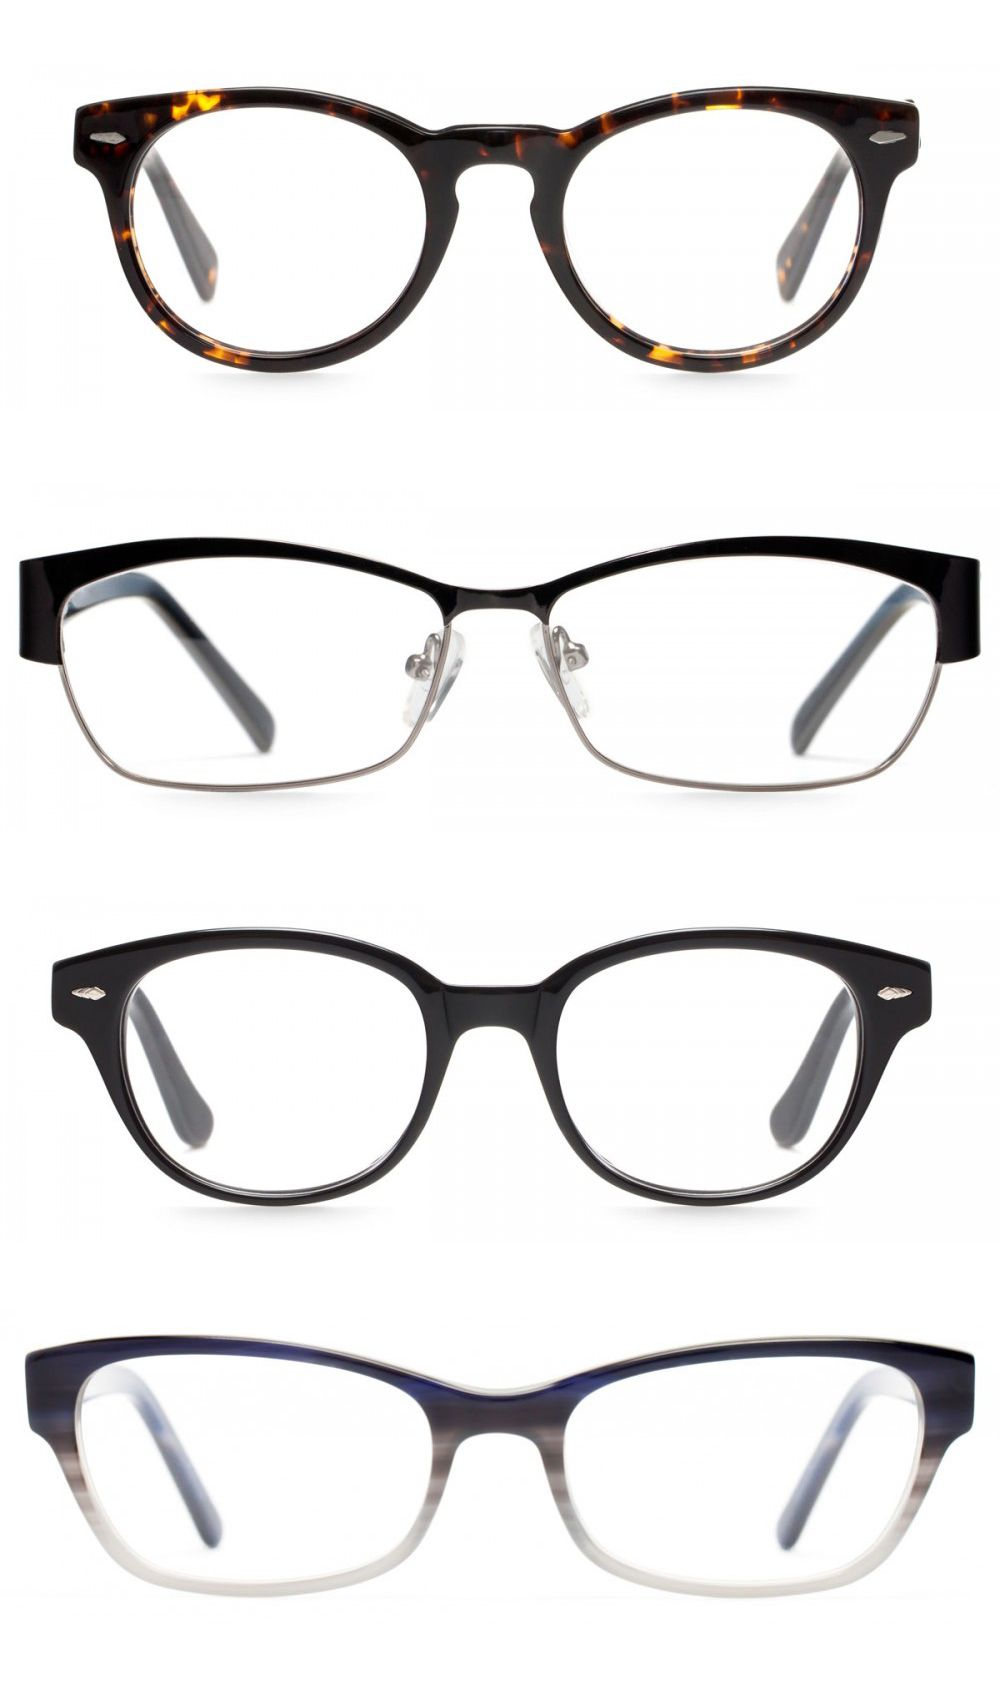 Eyeglass Frames For A Square Face : The perfect glasses for square faces felix + iris ...